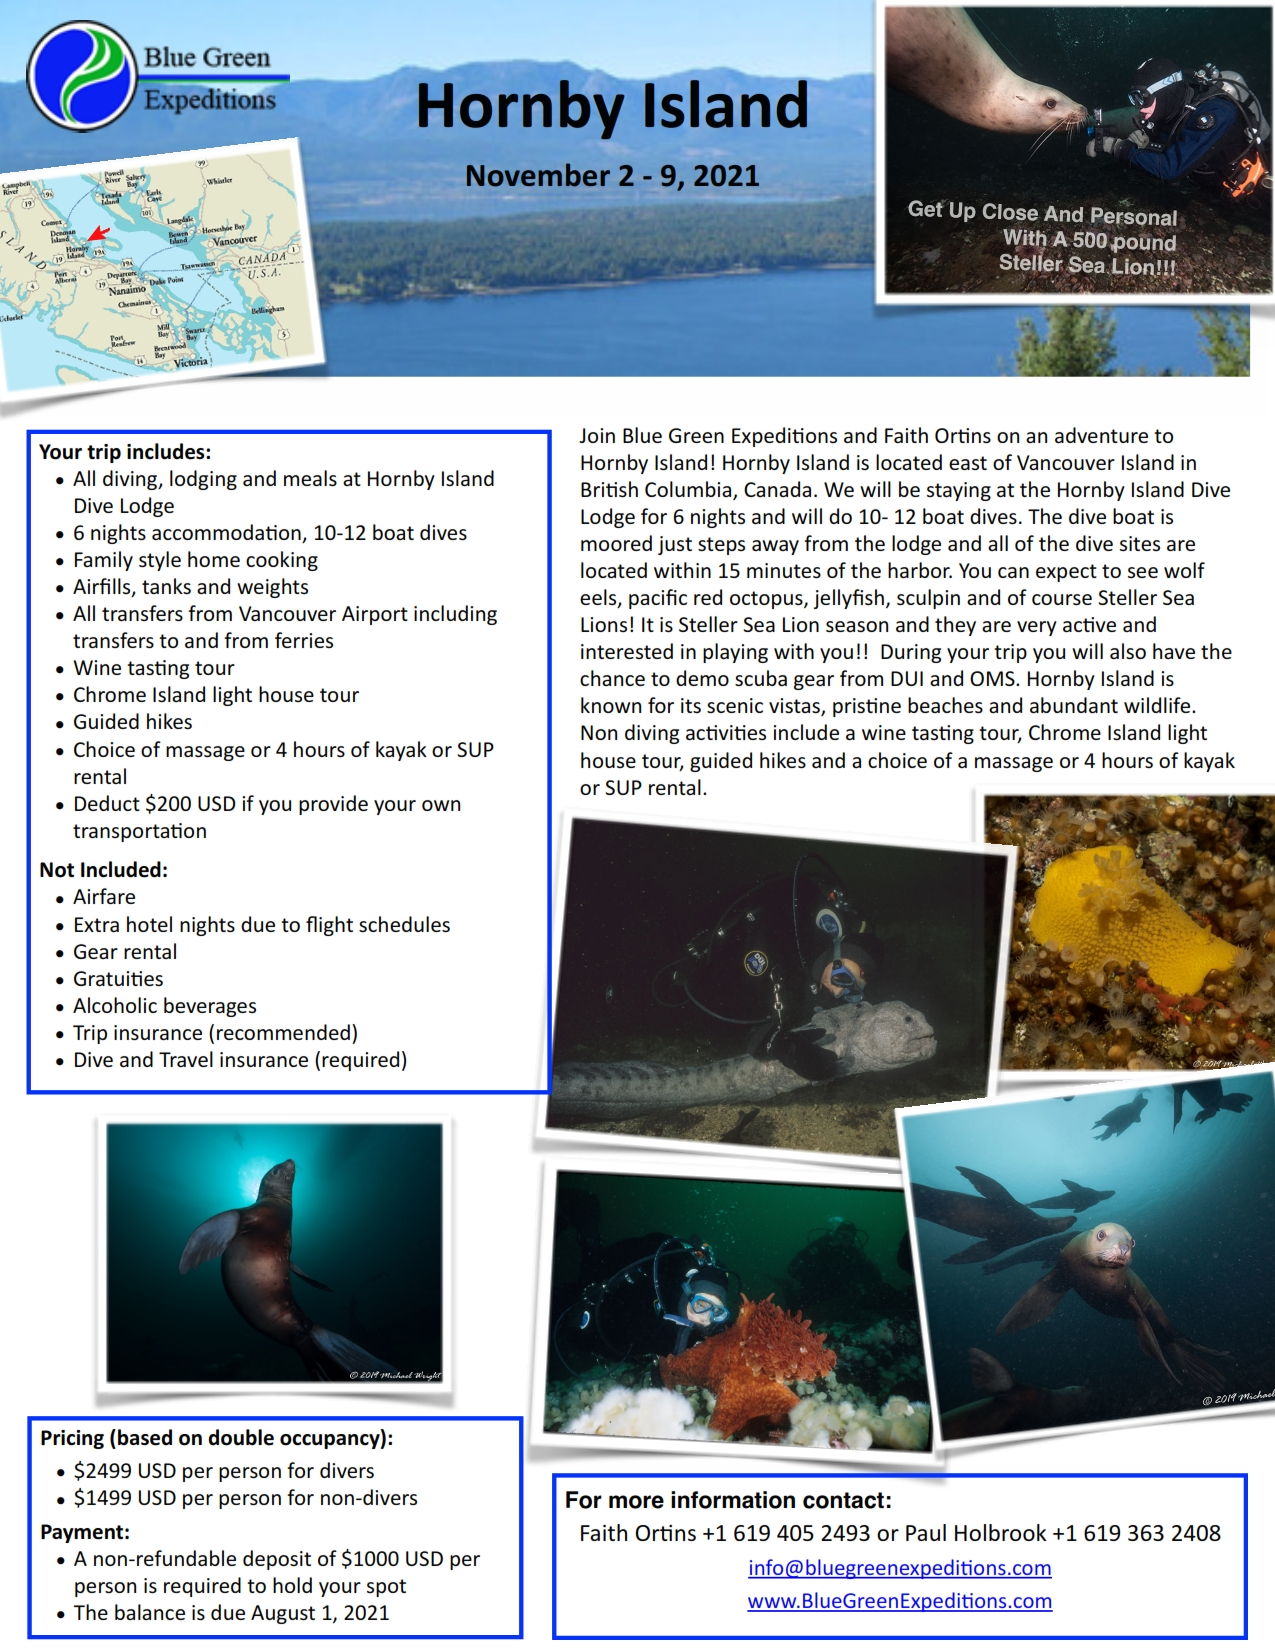 Hornby Island, November 2-9, 2021, trip itinerary and pricing. Same information is available in the expedition flyer PDF.